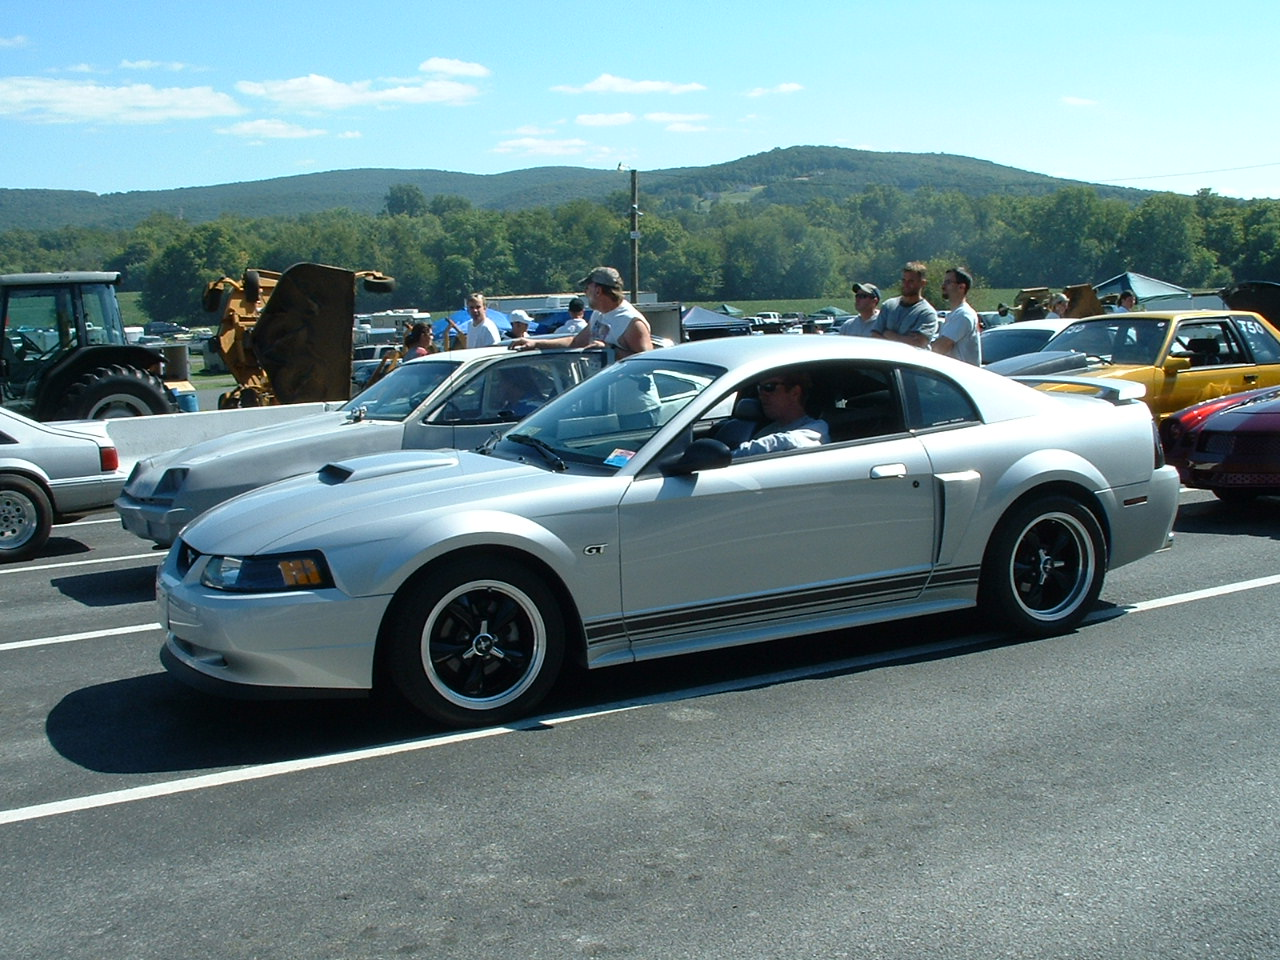 Ford Mustang #2